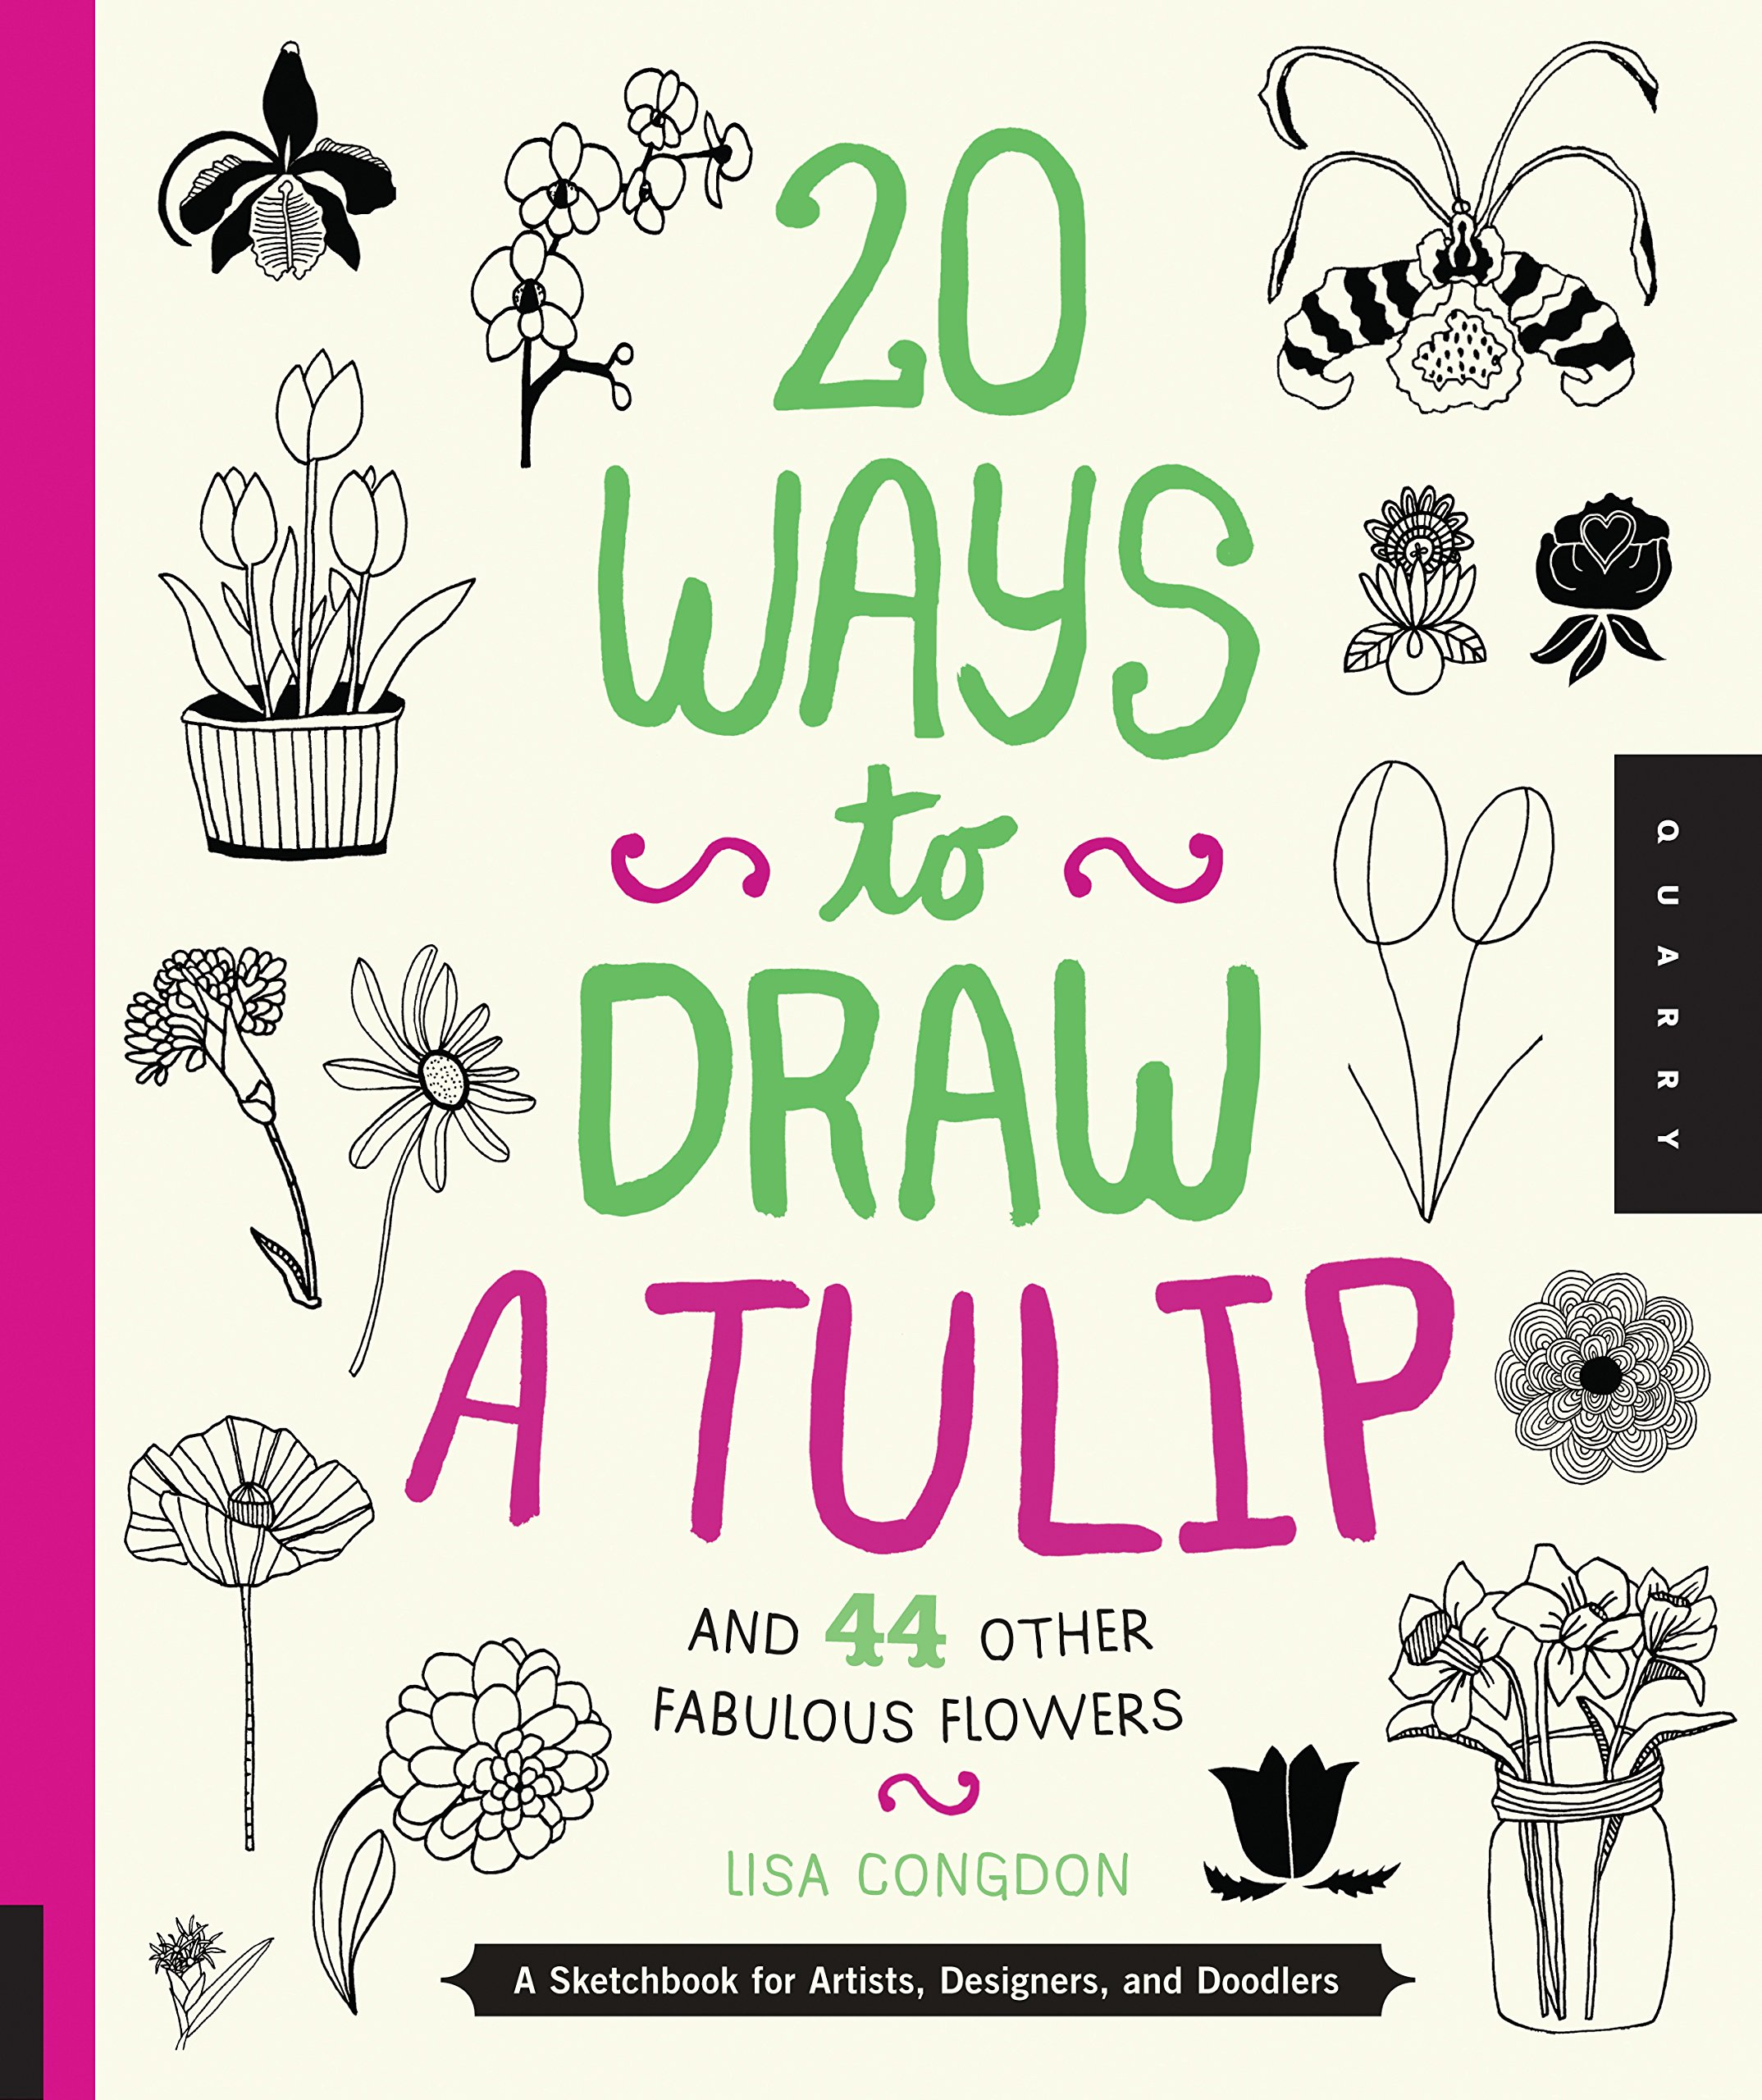 20 ways to draw a tulip and 44 other fabulous flowers a sketchbook for artists designers and doodlers lisa congdon 0080665010446 amazoncom books